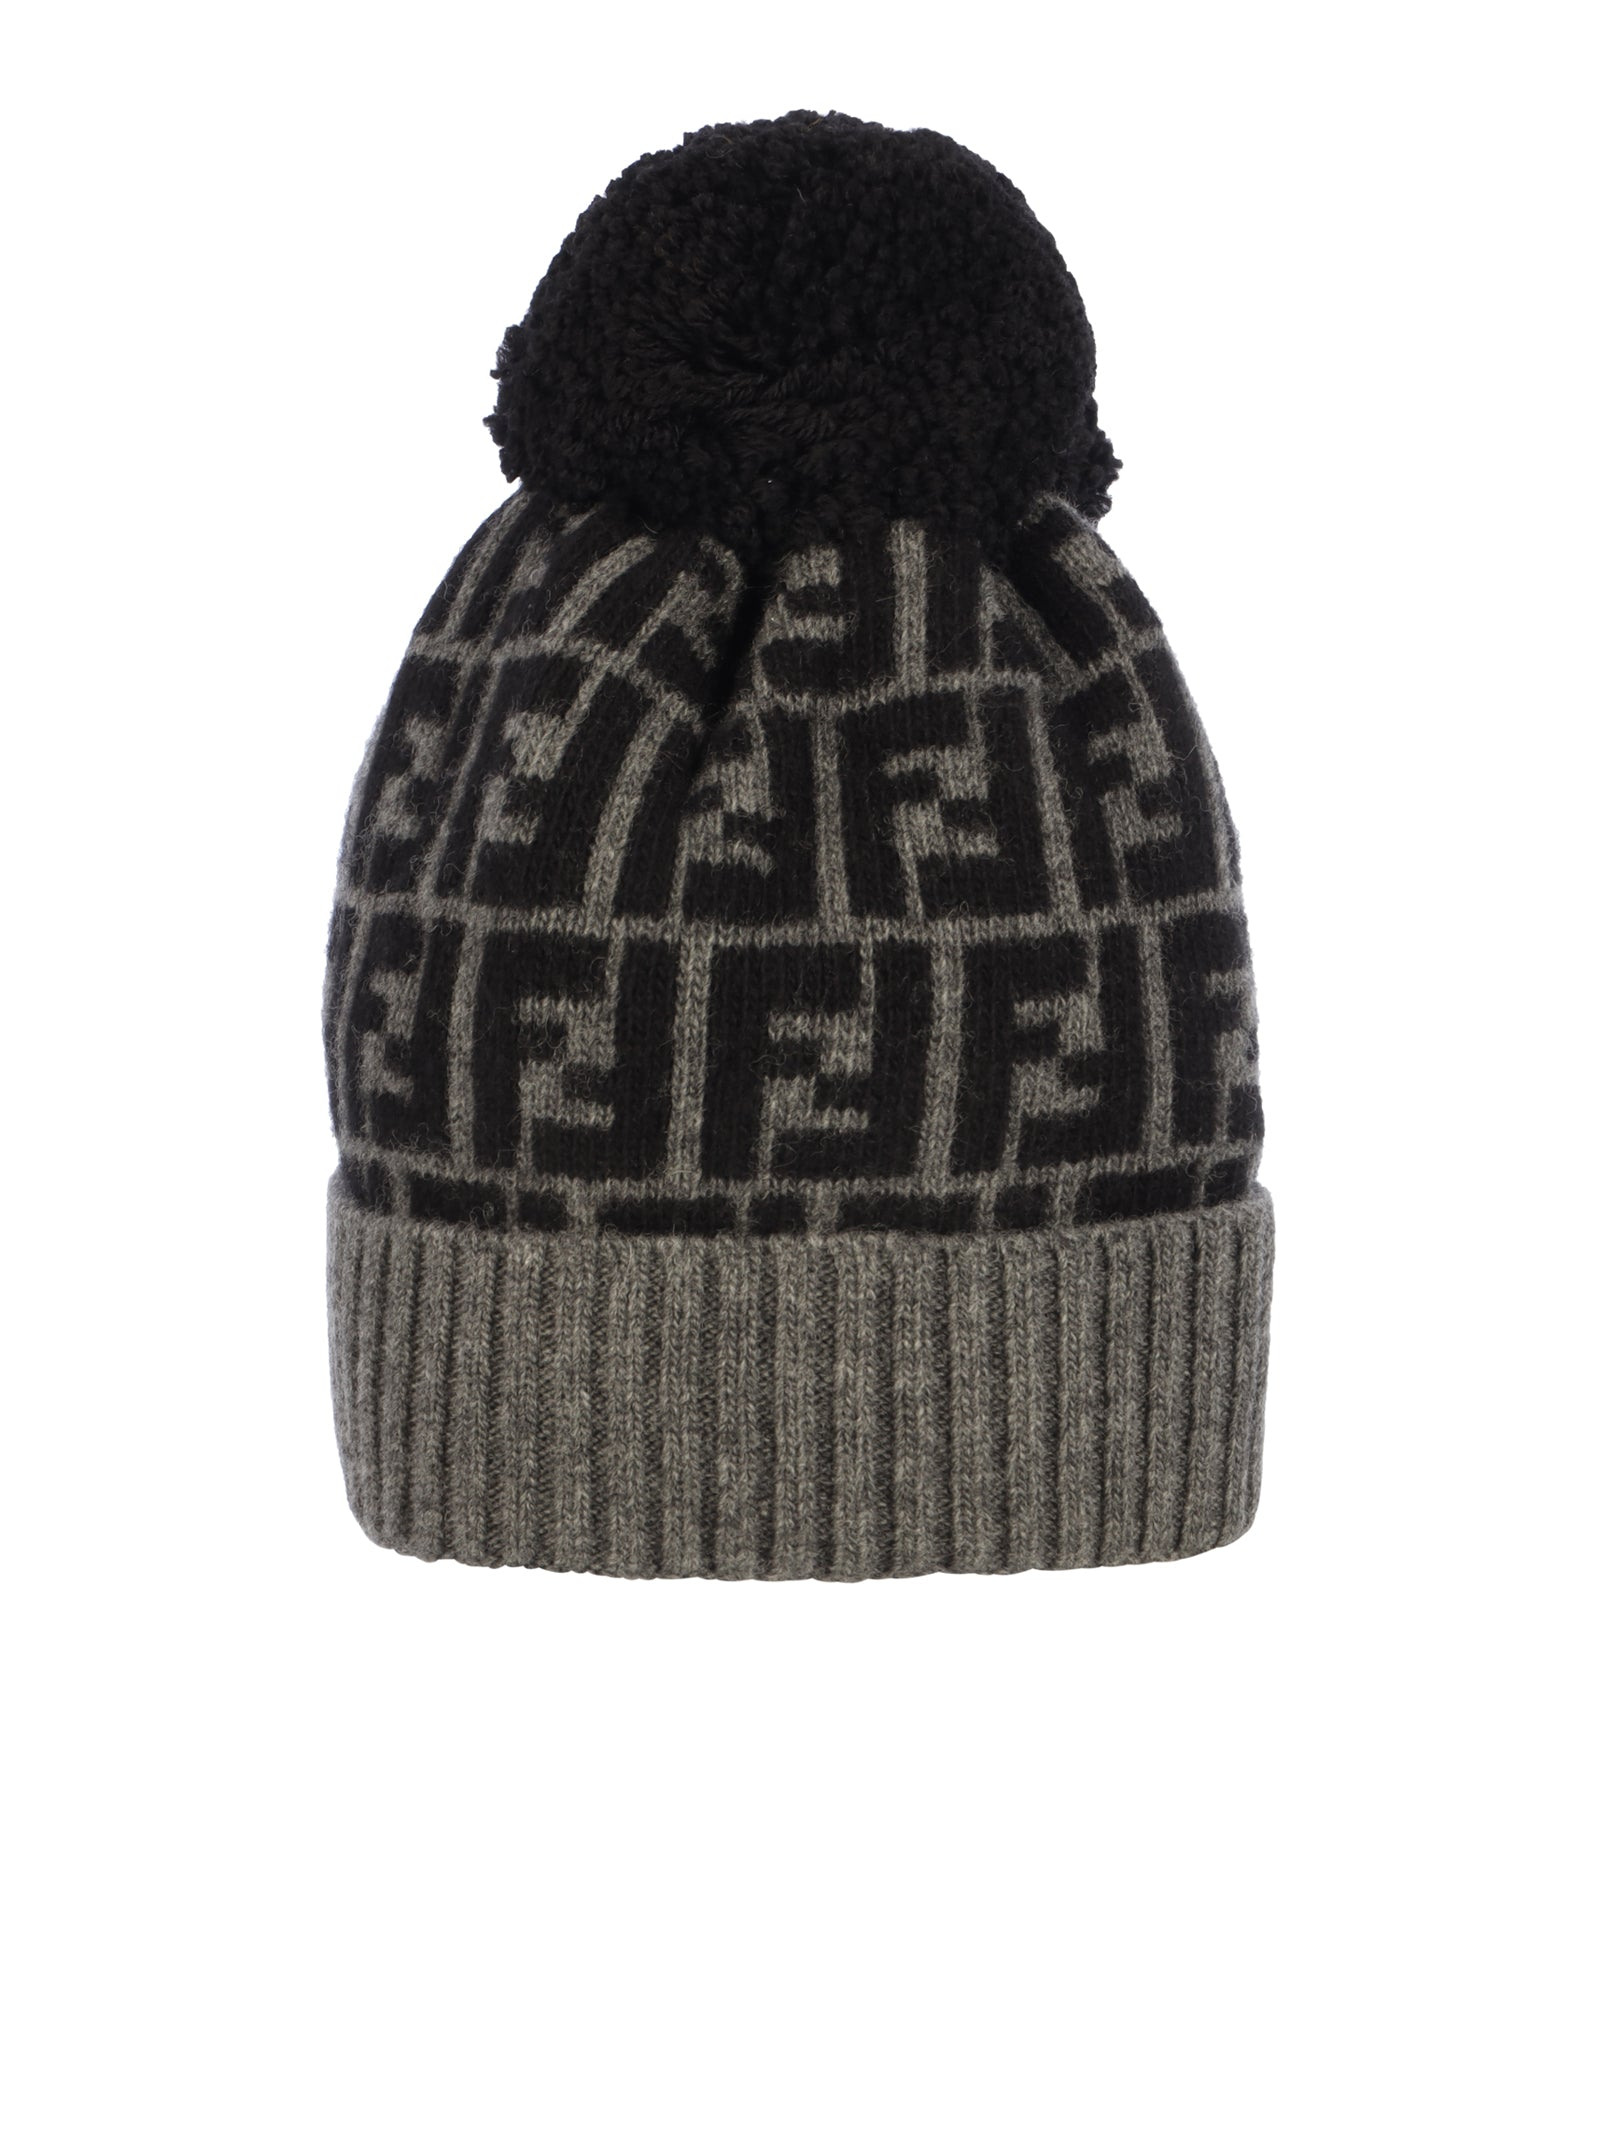 wool cap with logo